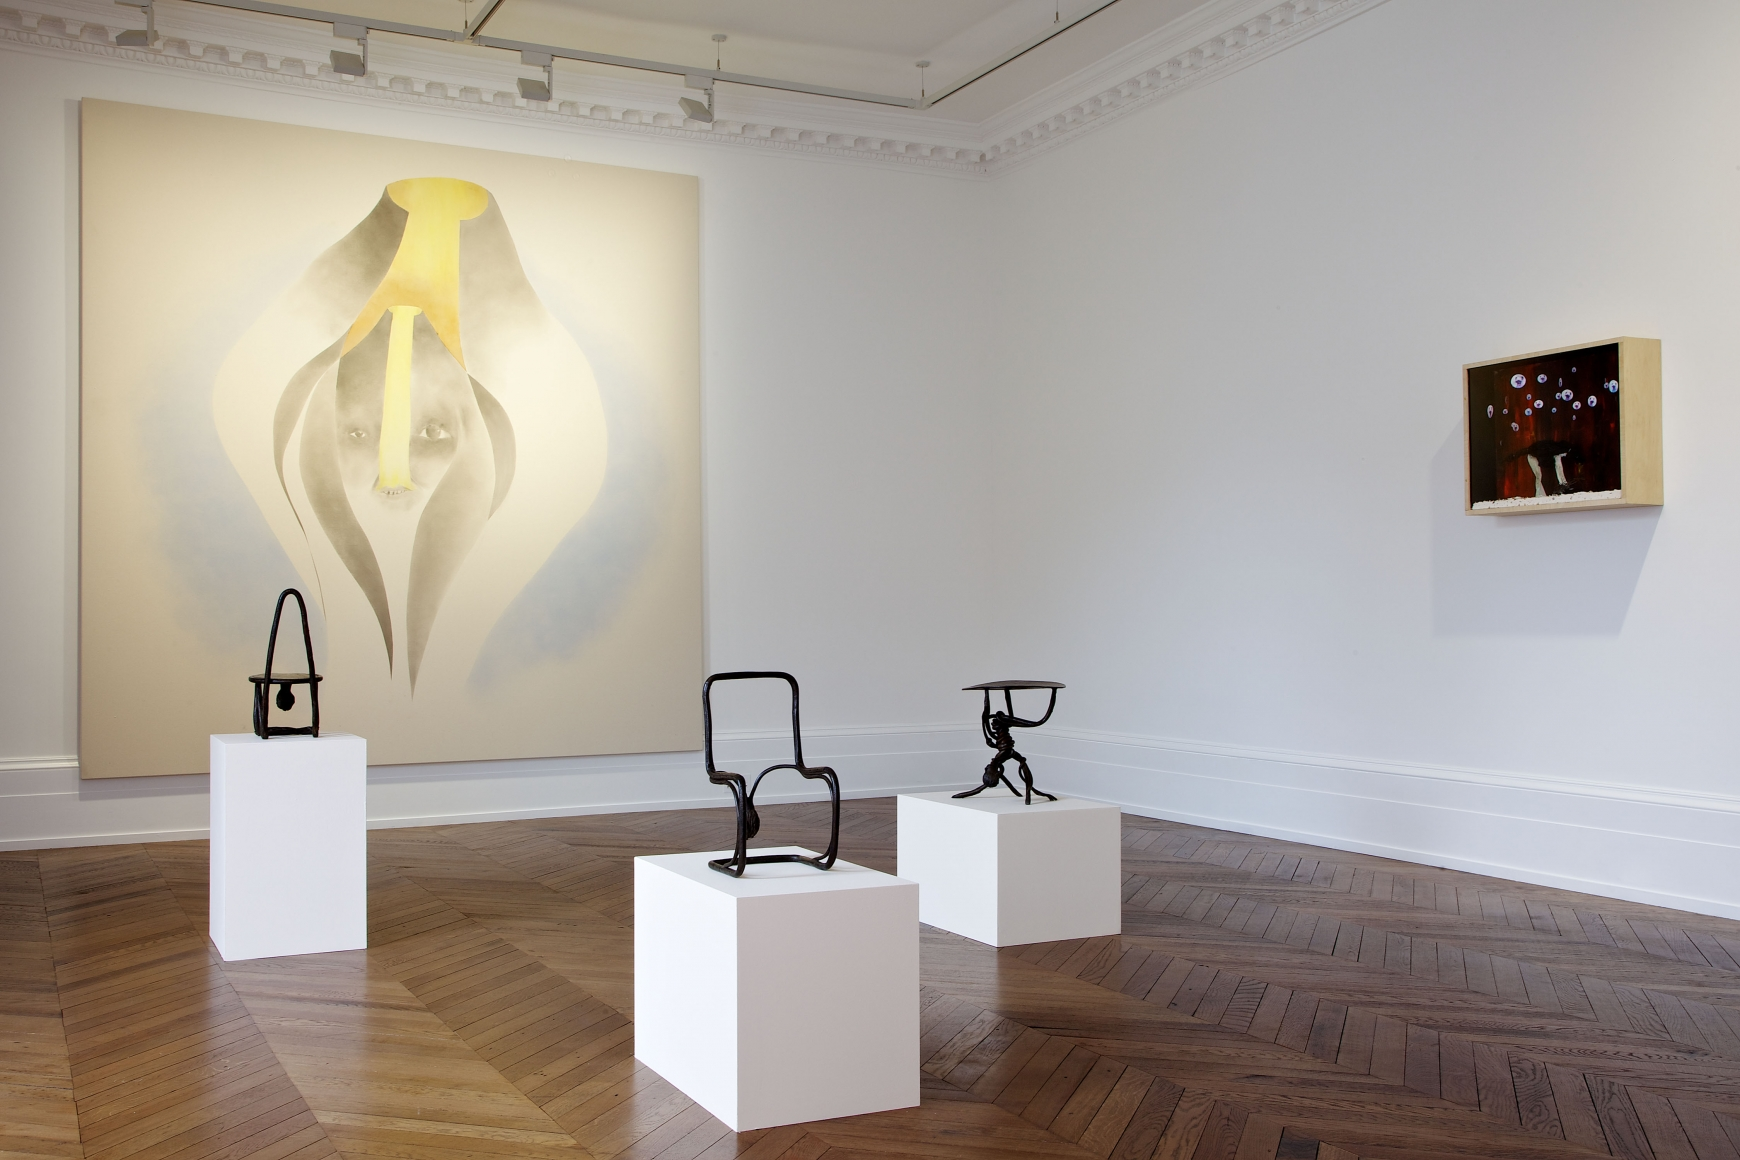 ENRICO DAVID New Works 17 September through 16 November 2013 MAYFAIR, LONDON, Installation View 5